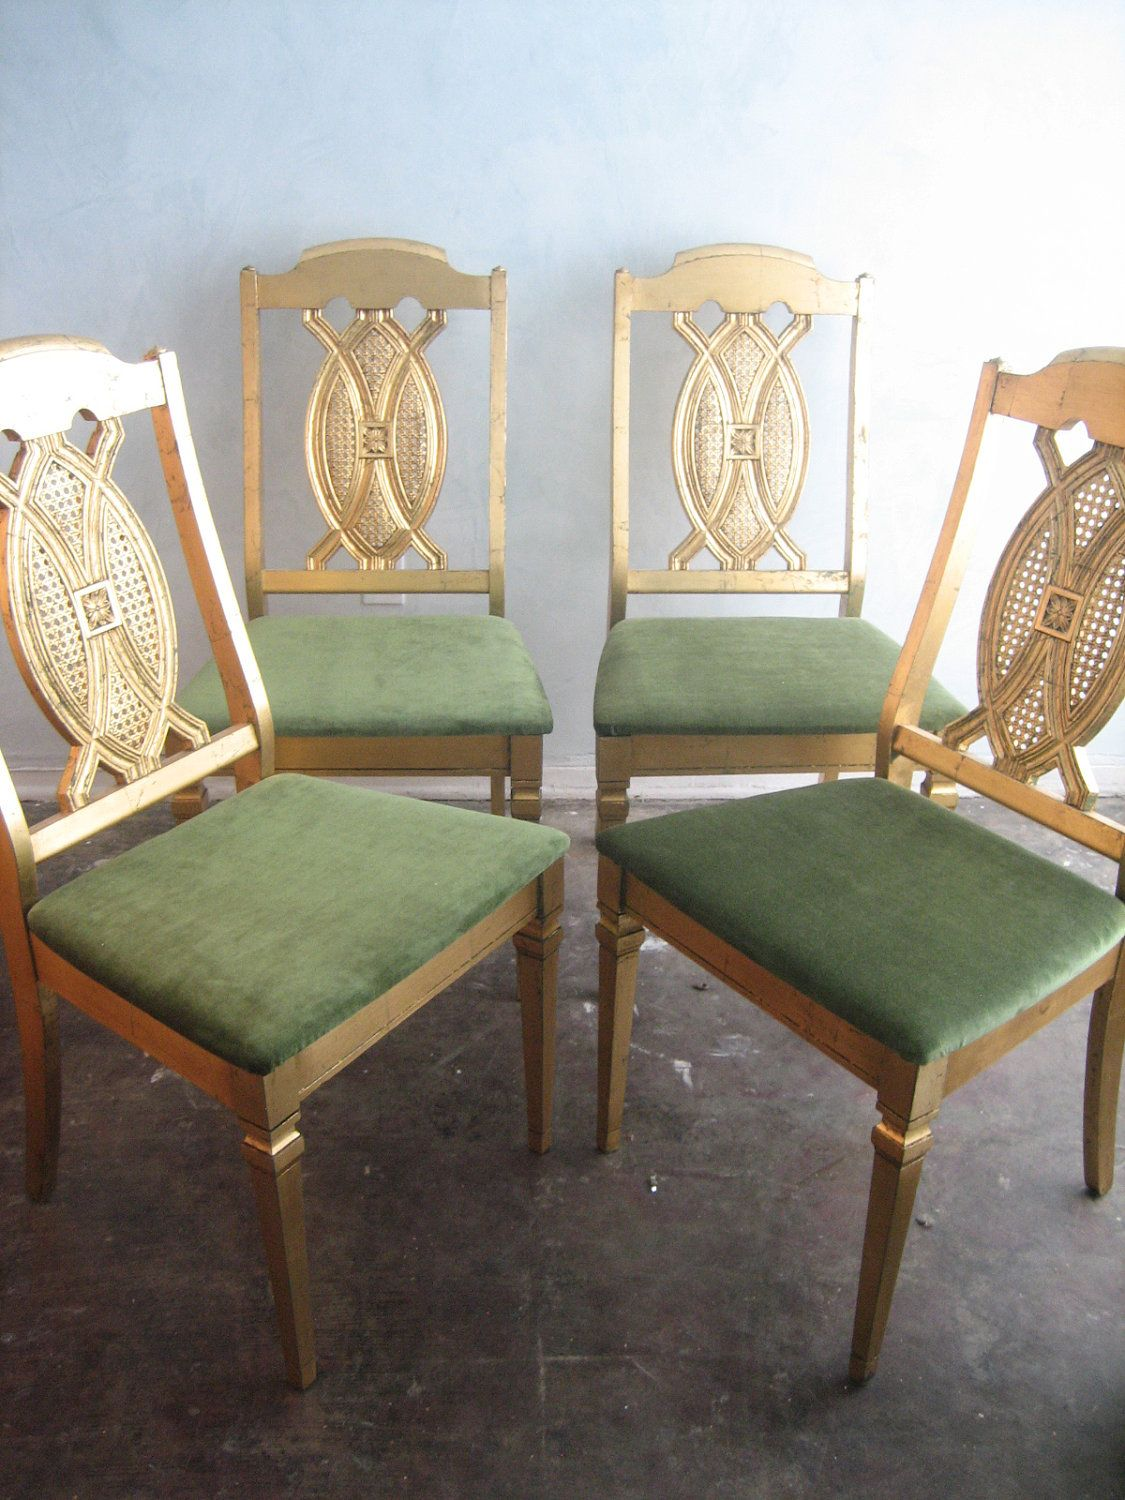 Gold Leaf Our Tulip Chairs, + Silk Kadife Seats. Set Of 4 Gold Leaf Retro  Cane Chairs.